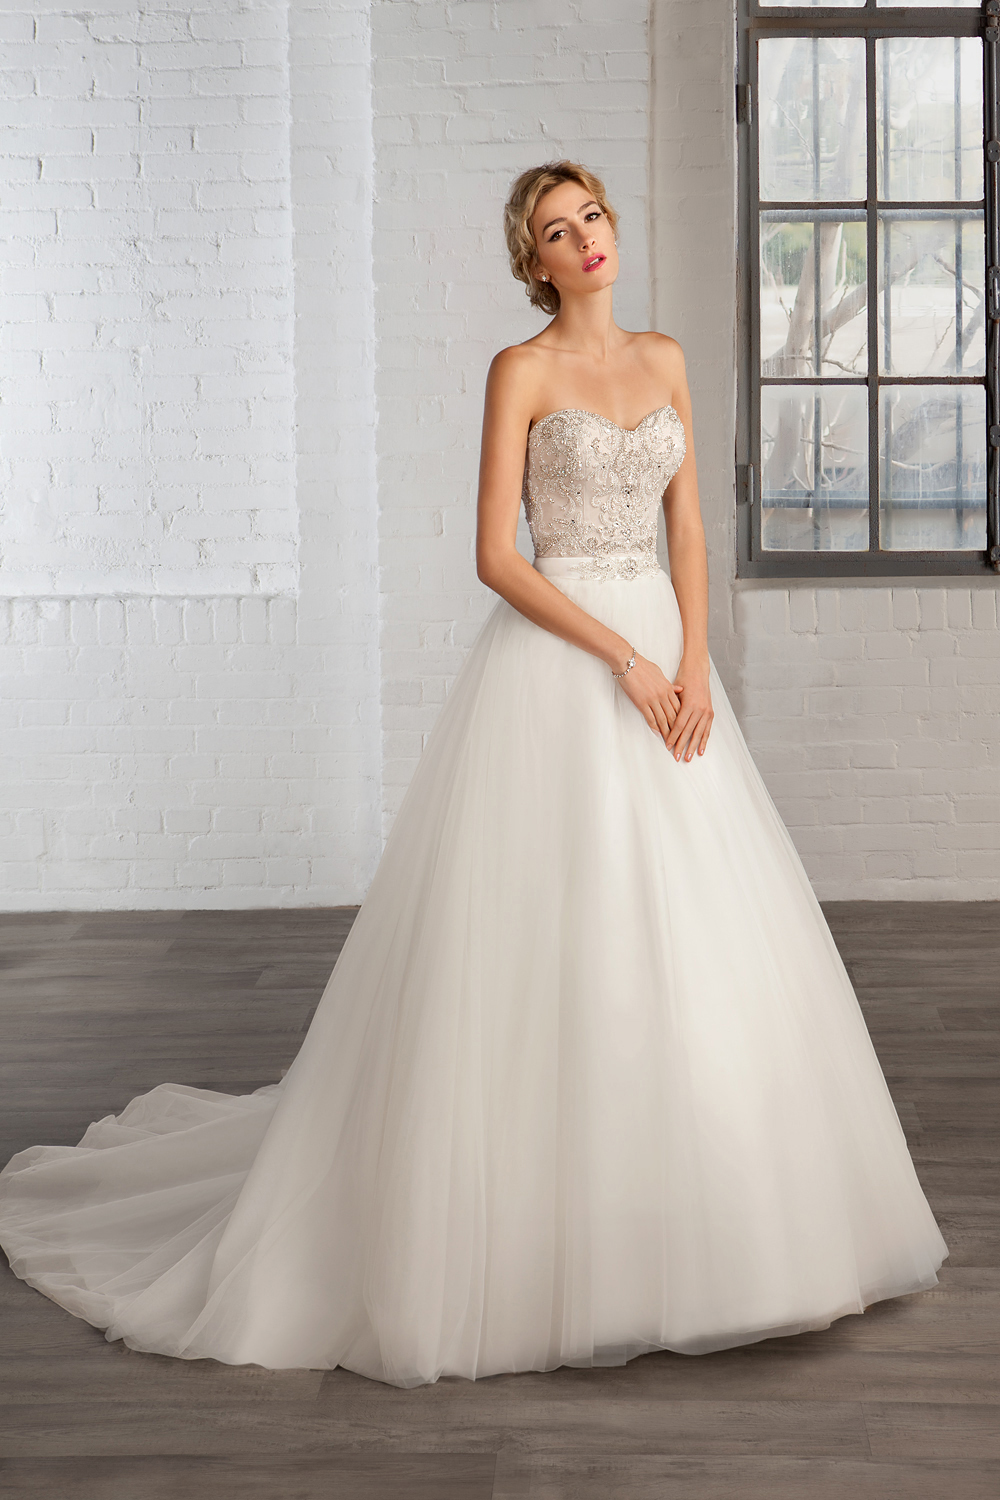 Hot Sale Brazil Allure A Line Sleeveless Wedding Gowns With Beading Court Train Online Shop China Zouboutin In Dresses From Weddings Events On